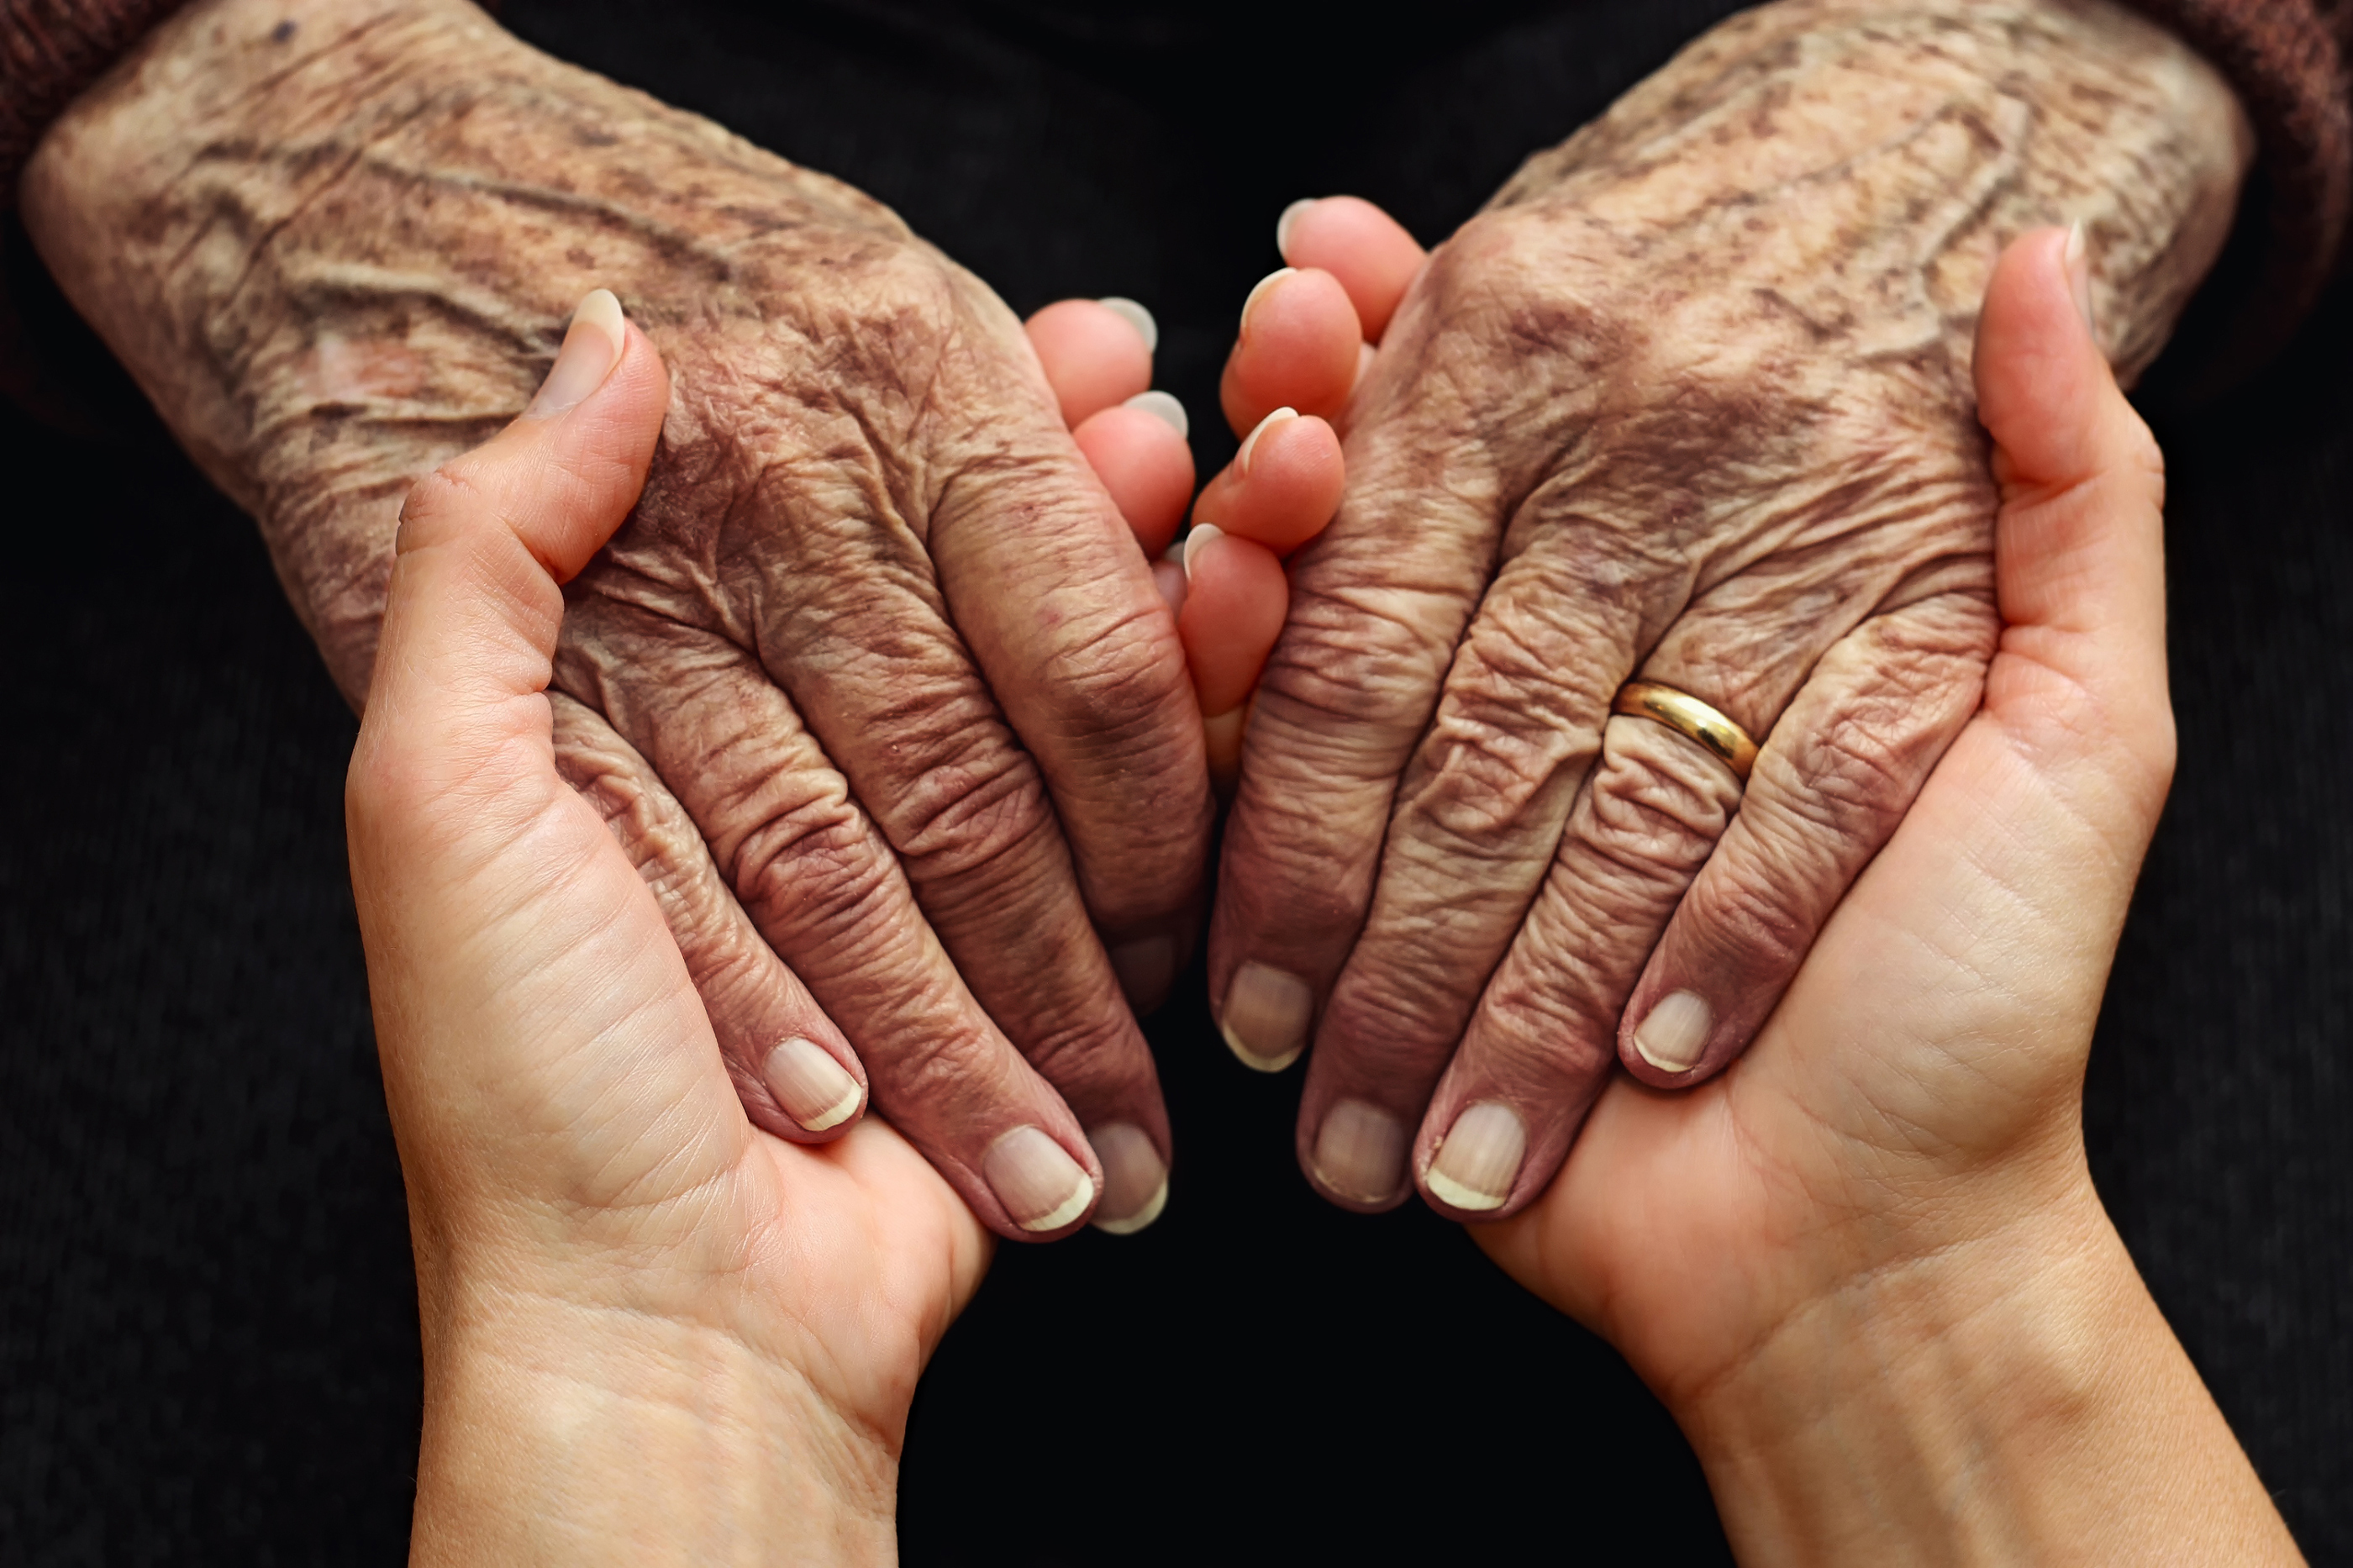 Supporting the elderly in care homes with the right lighting